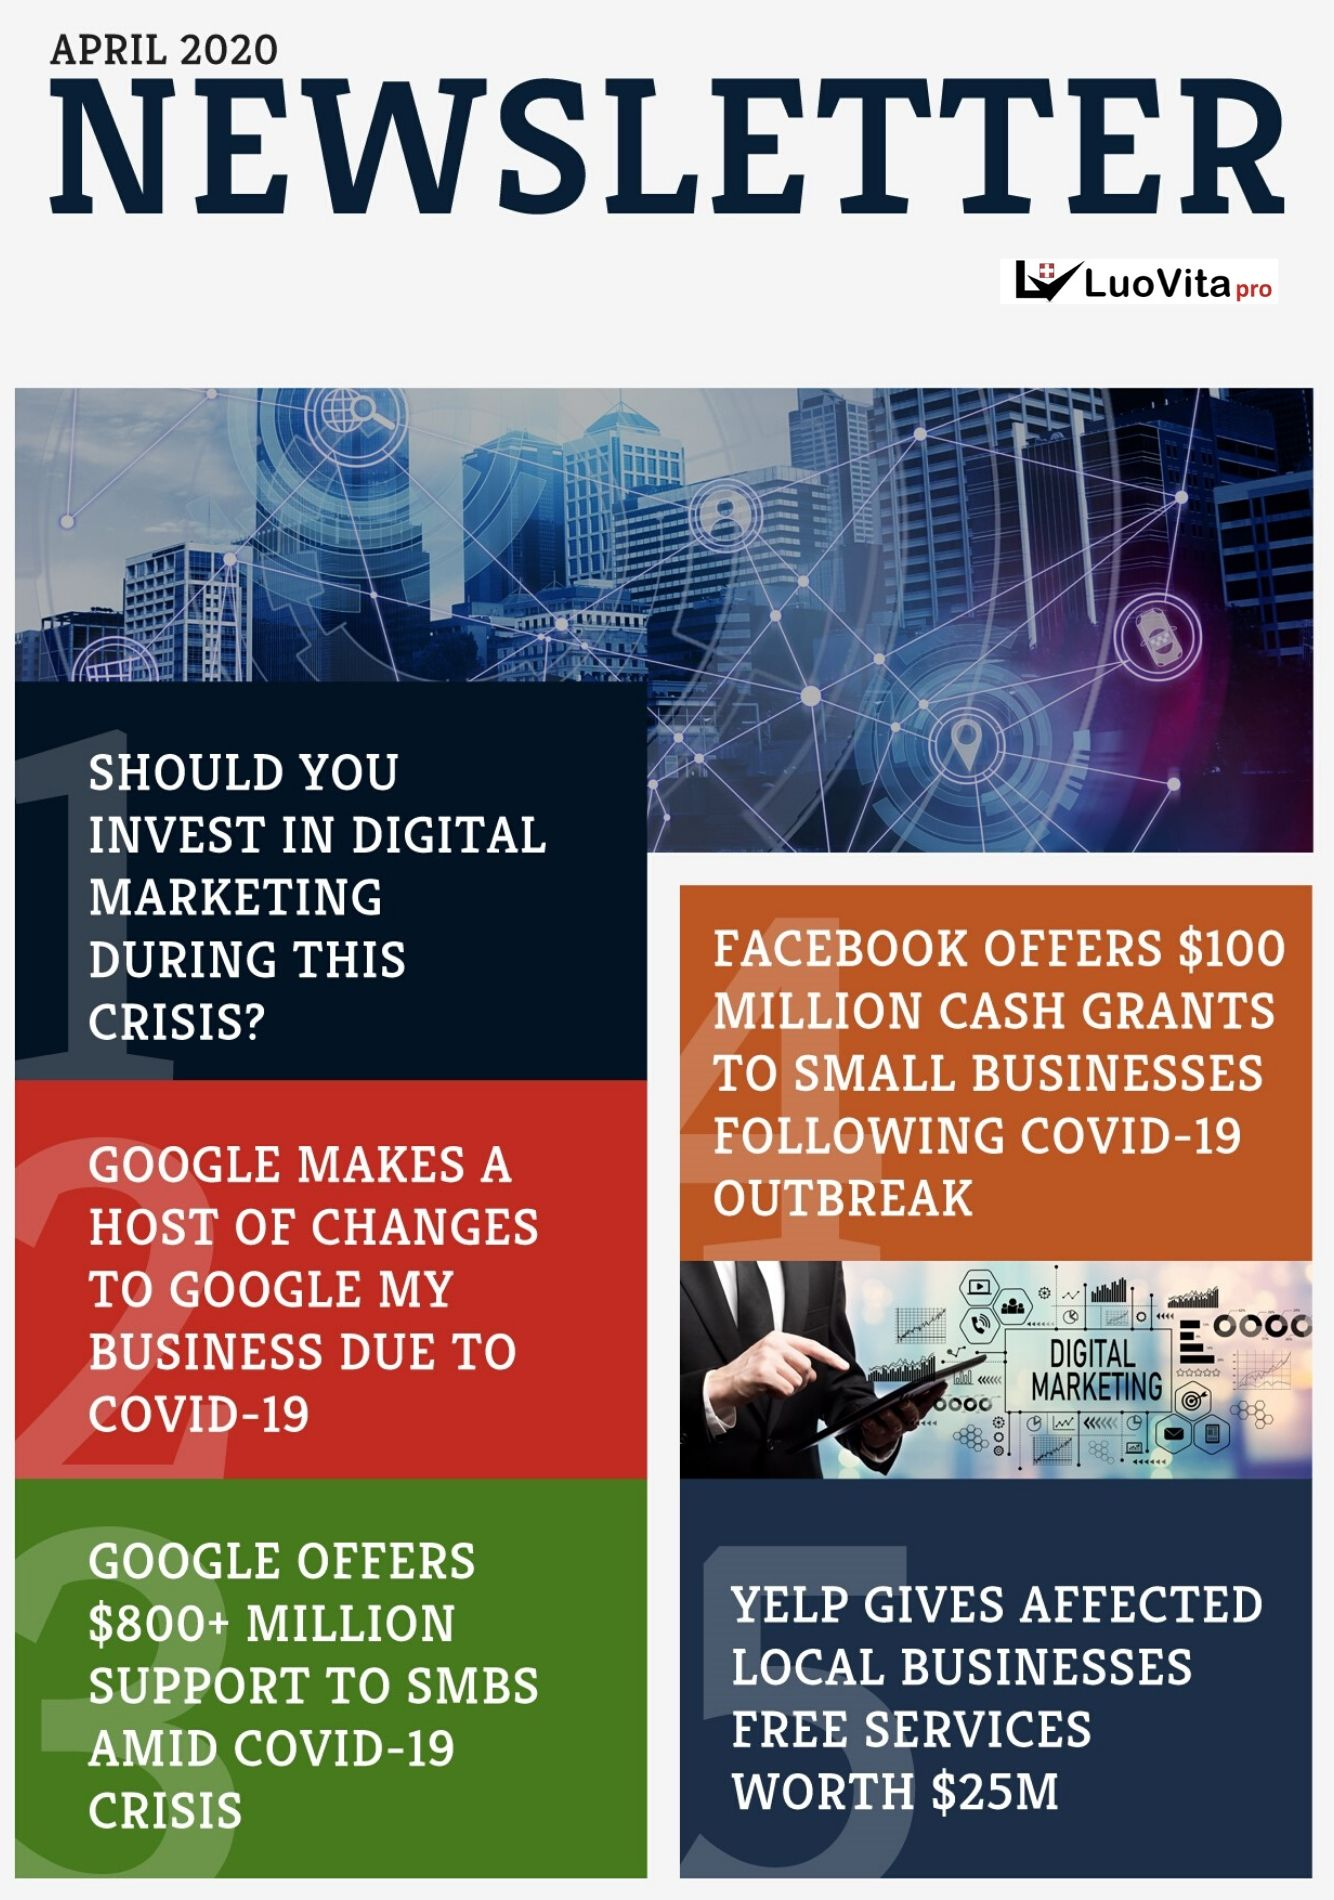 GOOGLE MAKES A HOST OF CHANGES TO GOOGLE MY BUSINESS DUE TO COVID-19 - Newsletter April 2020, SHOULD YOU INVEST IN DIGITAL MARKETING DURING THIS CRISIS?, GOOGLE MAKES A HOST OF CHANGES TO GOOGLE MY BUSINESS DUE TO COVID-19, GOOGLE OFFERS $800+ MILLION SUPPORT TO SMBS AMID COVID-19 CRISIS, FACEBOOK OFFERS $100 MILLION CASH GRANTS TO SMALL BUSINESSES FOLLOWING COVID-19 OUTBREAK, YELP GIVES AFFECTED LOCAL BUSINESSES FREE SERVICES WORTH $25M, coronovirus, 2020 pandemic, novel cornora virus, covid-19m, wuhan corona virus, online marketing articles, online marketing courses, seo meaning, seo definition, how to grow my business online, what is digital marketing, strategies to promote business online, google analytics, best marketing courses, online marketing articles, online marketing courses, online business idea, how to make big money online, how to earn money online, check google rank, how to promote business using google, what is digital marketing, strategies to promote business online, tips to become succecssful entrepreneurs, basic seo, how to get positive reviews for your business, how to make big money online, how to earn money online, check google rank, how to promote business using google, what is digital marketing, strategies to promote business online, tips to become succecssful entrepreneurs, best online marketing course, free online marketing course, free online marketing training, how to market my business in social media,tips to become successful entrepreneurs, pinterest account creation, social media marketing benefits, what is digital marketing, strategies to promote business online, google analytics, how to market my business in social media,tips to become successful entrepreneurs